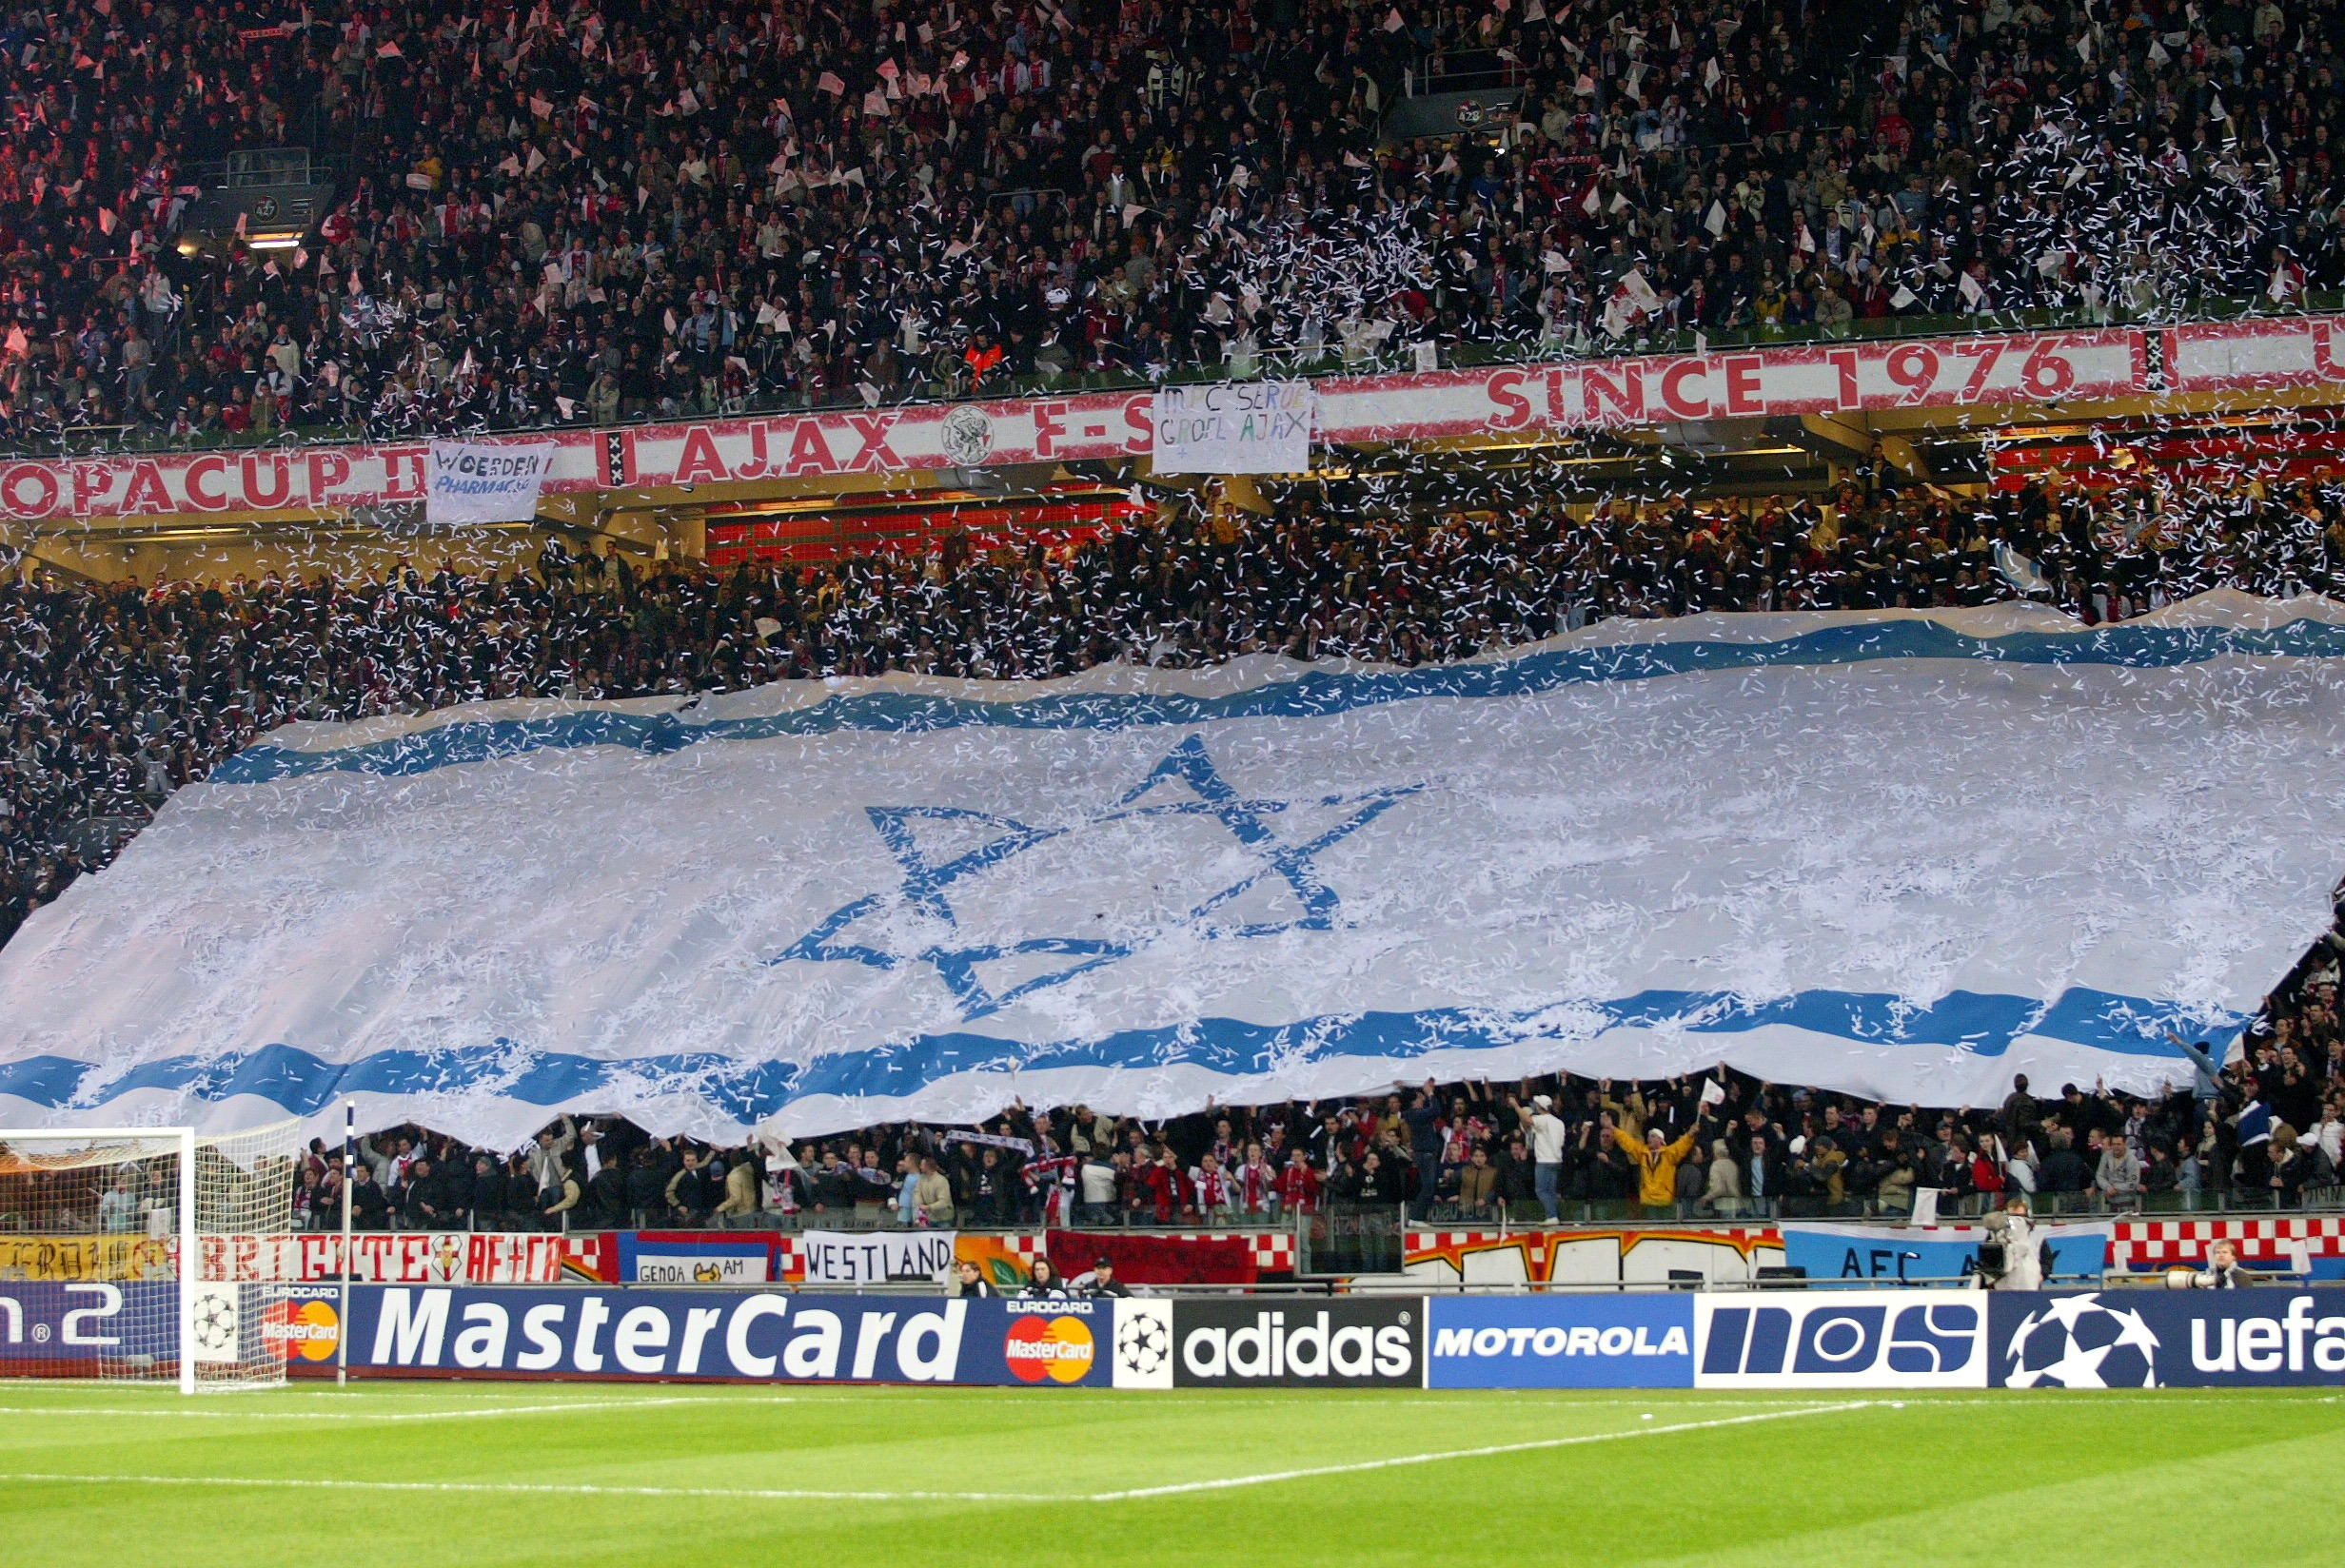 'Hamas, Hamas, Jews on the Gas': Dutch Police Investigating Anti-Semitic Chant Ahead of Soccer Game